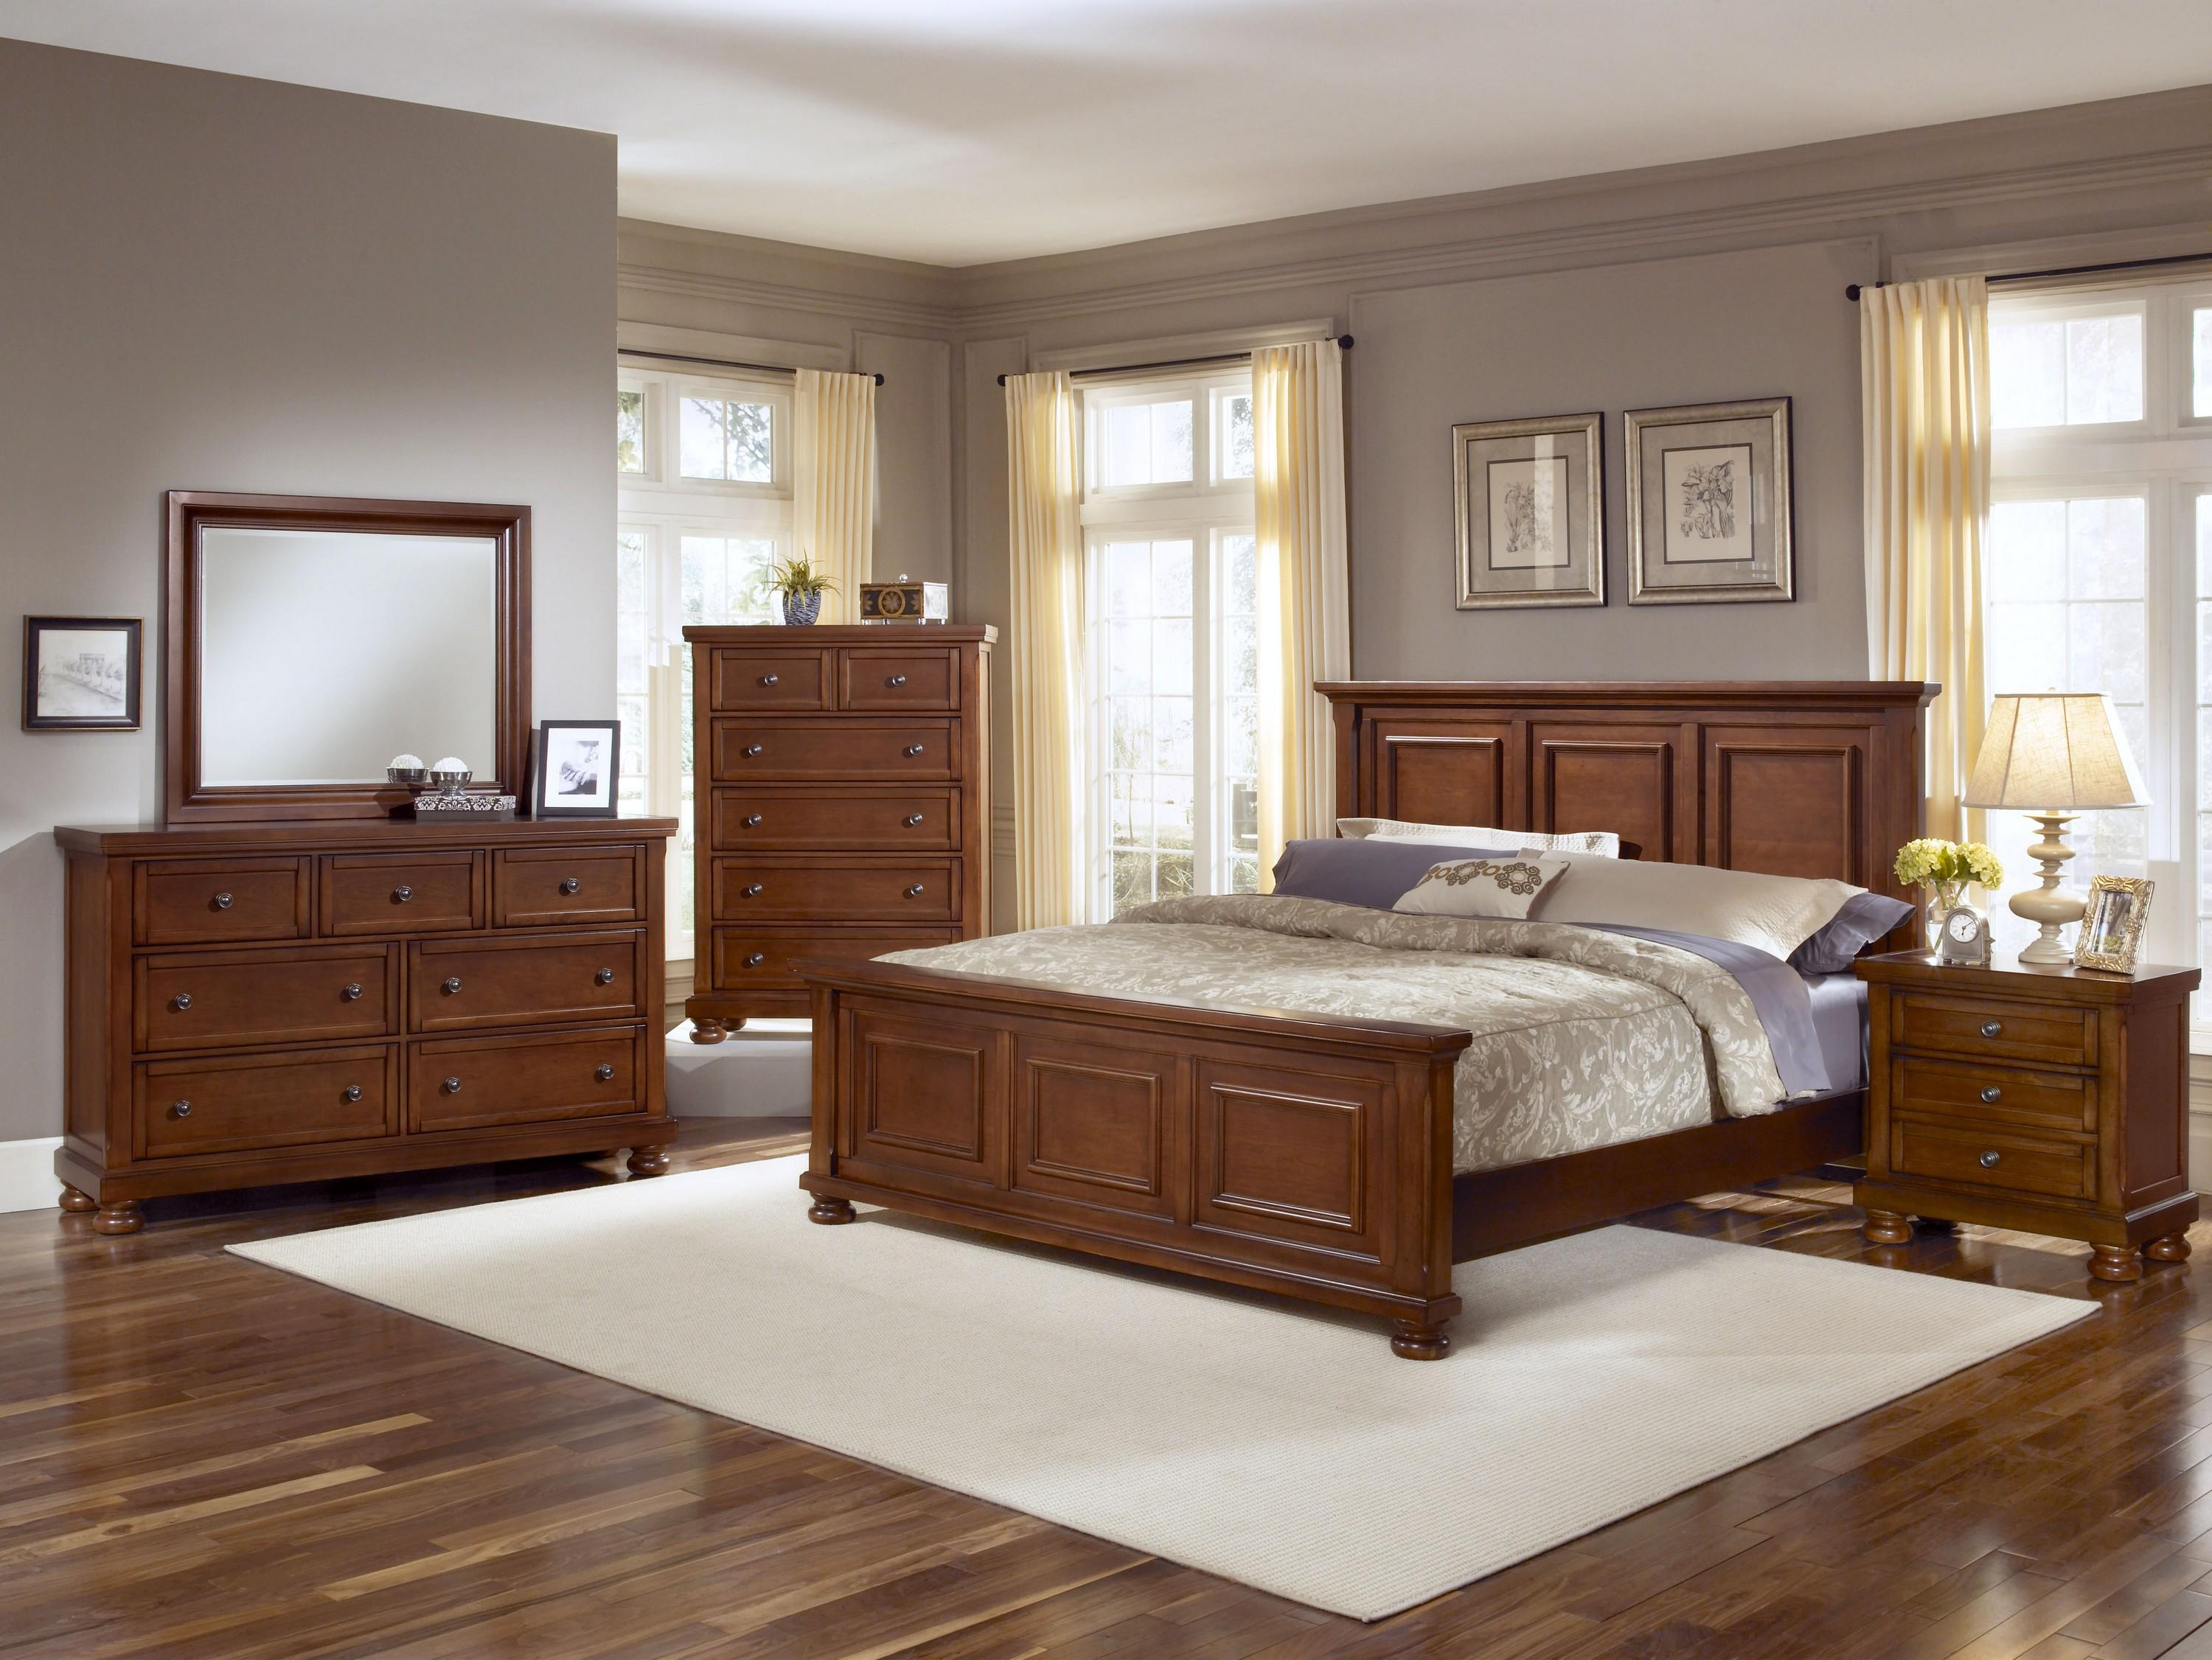 Vaughan Bassett Reflections Full Bedroom Group - Item Number: 532 F Bedroom Group 2